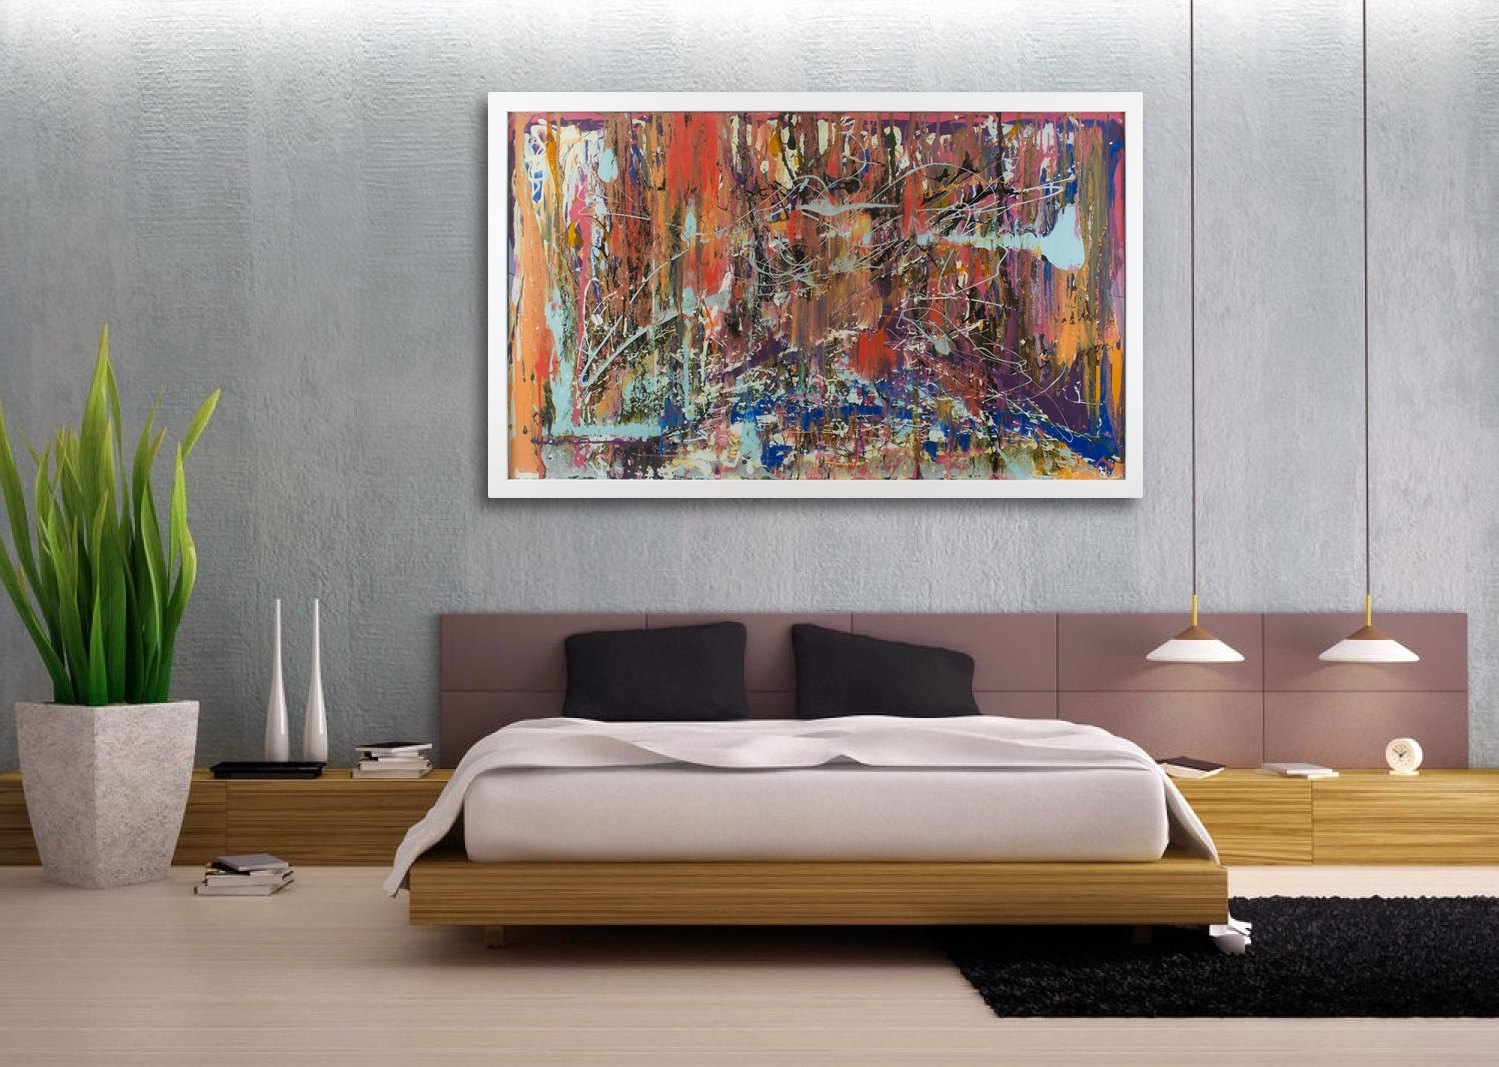 Gallery Large Modern Canvas Wall Art Viewing Abstract Artwork For with Modern Large Canvas Wall Art (Image 16 of 20)